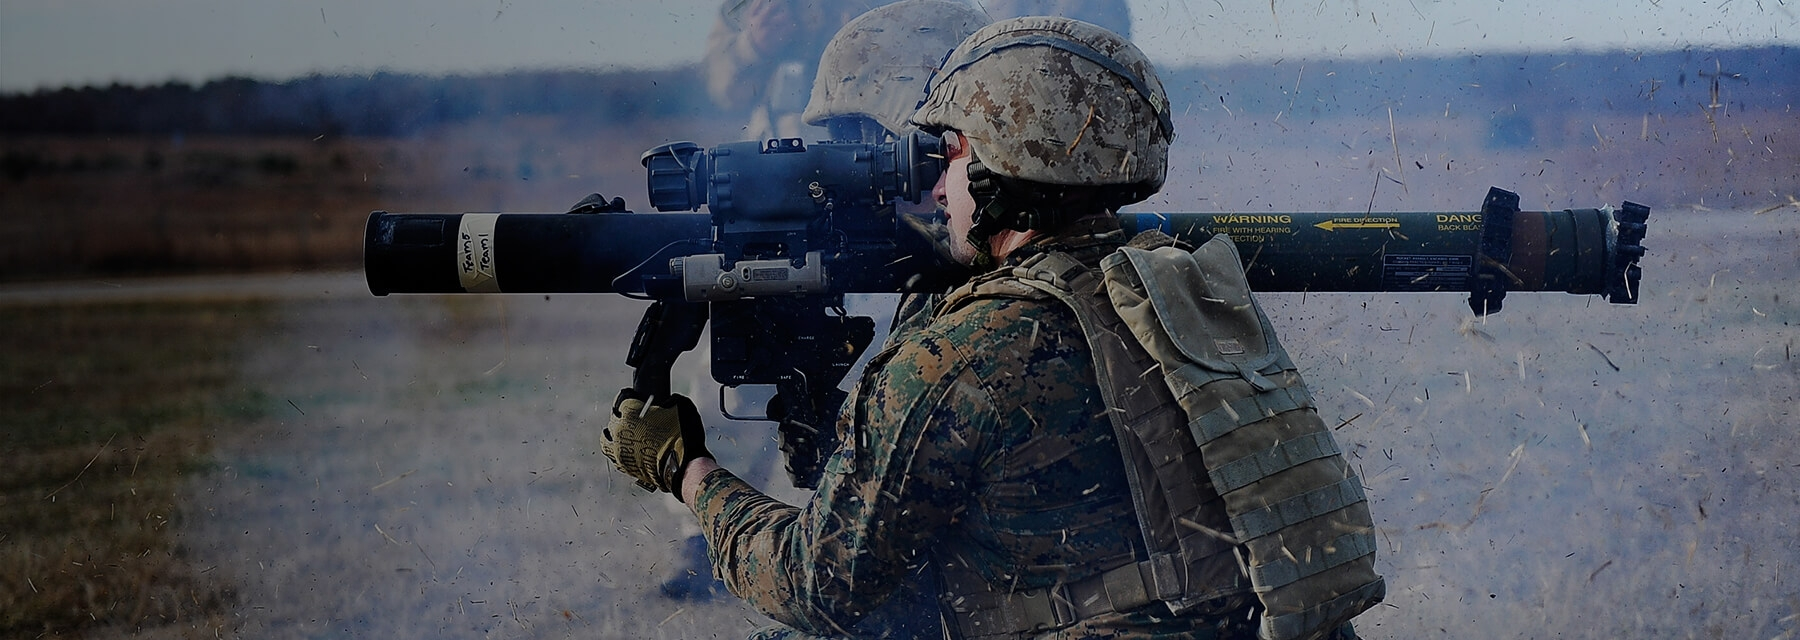 A Marine fires a weapon as debris fills the air.